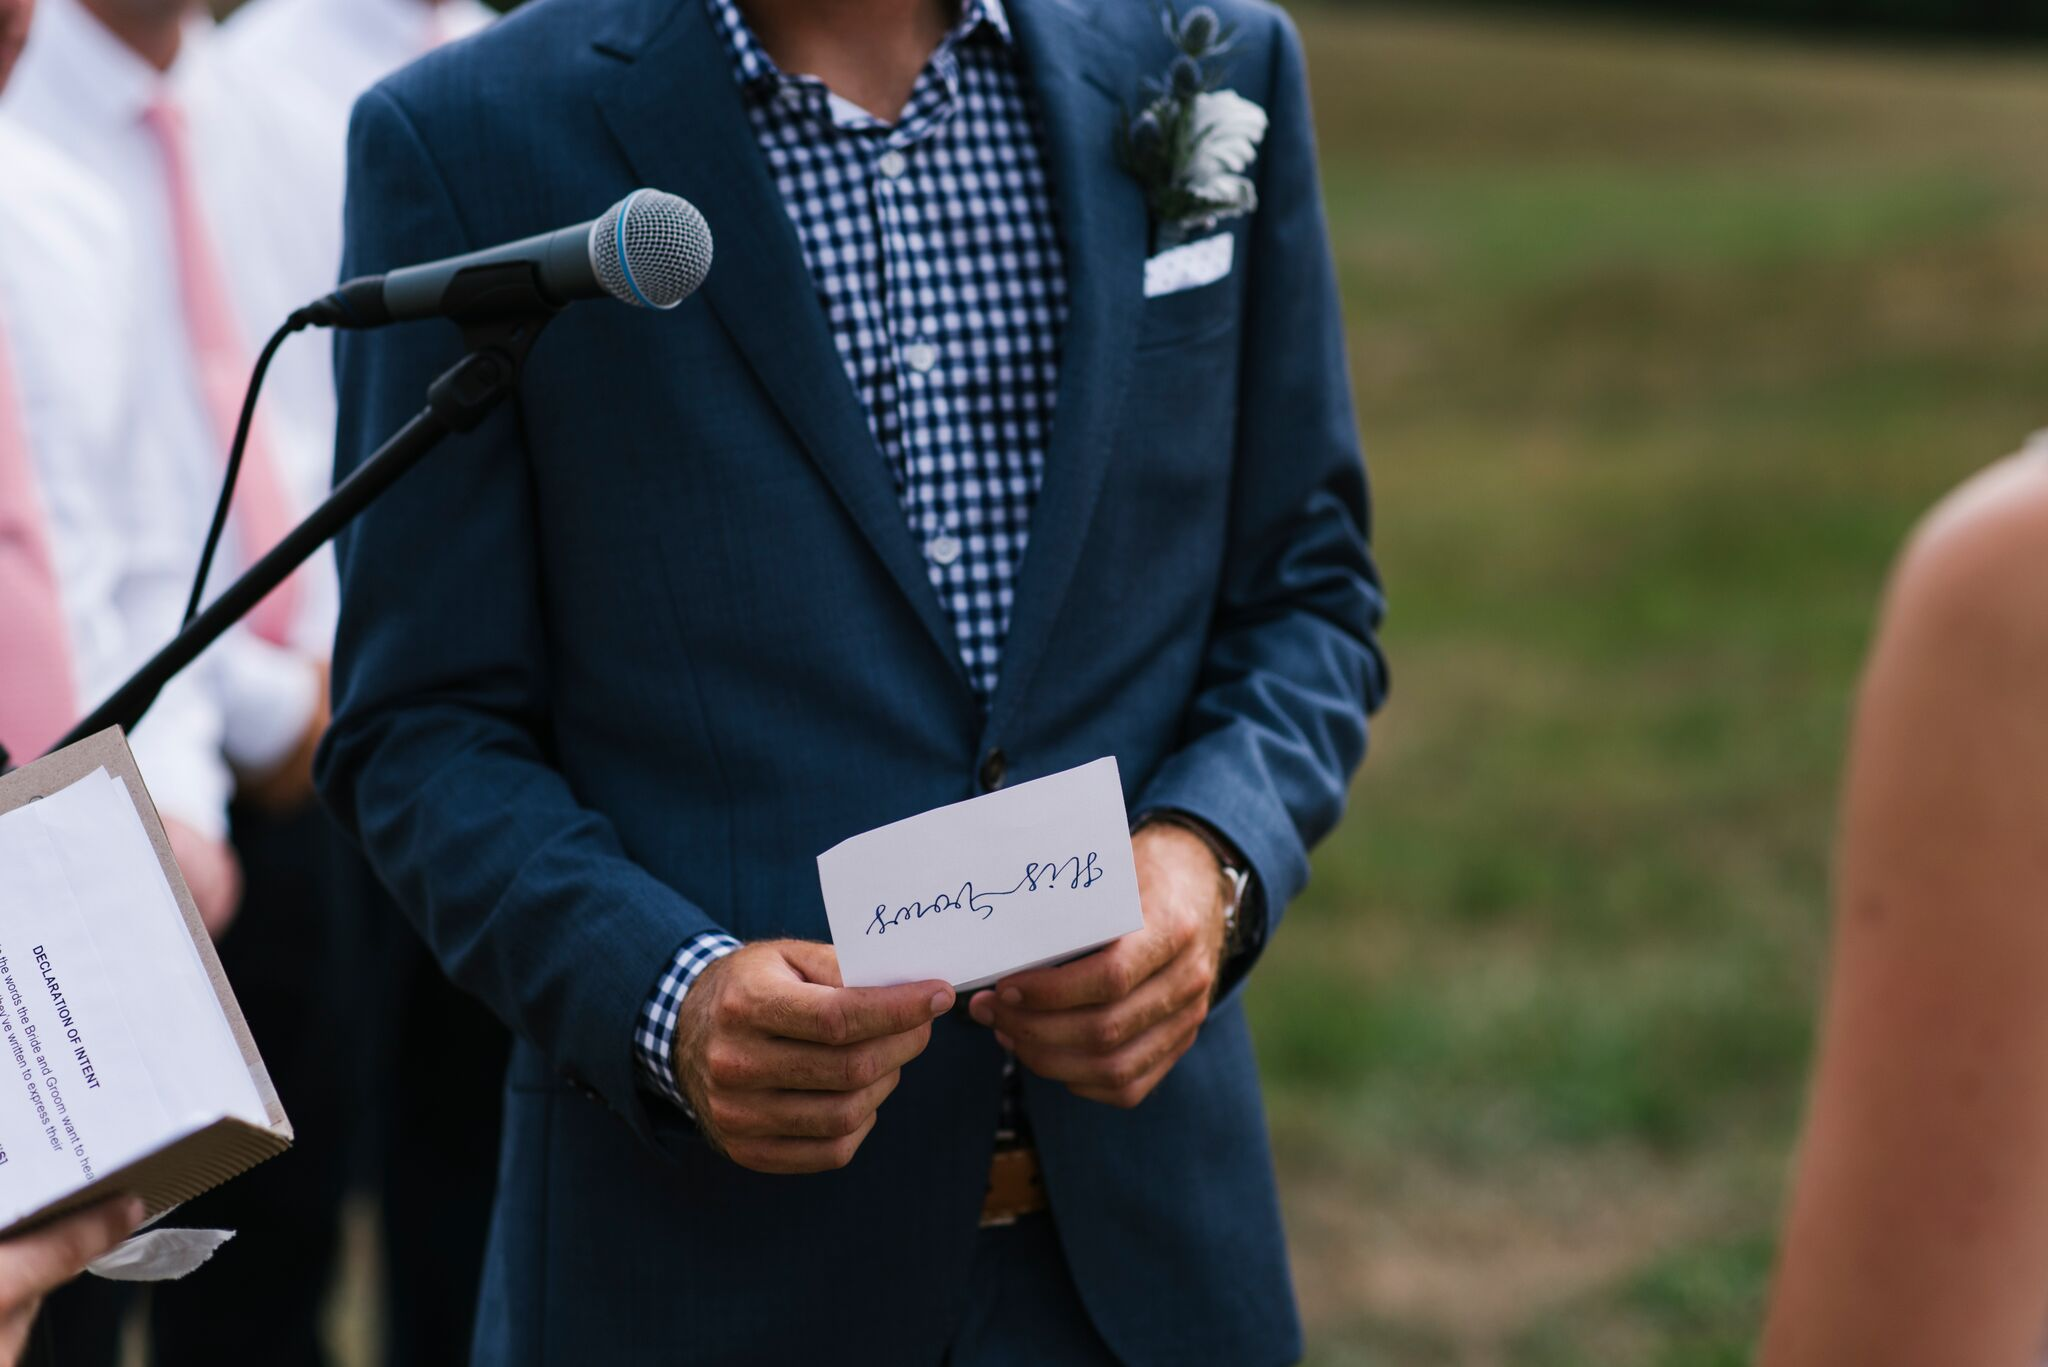 cutty-hunk-wedding-photographer-048.jpg